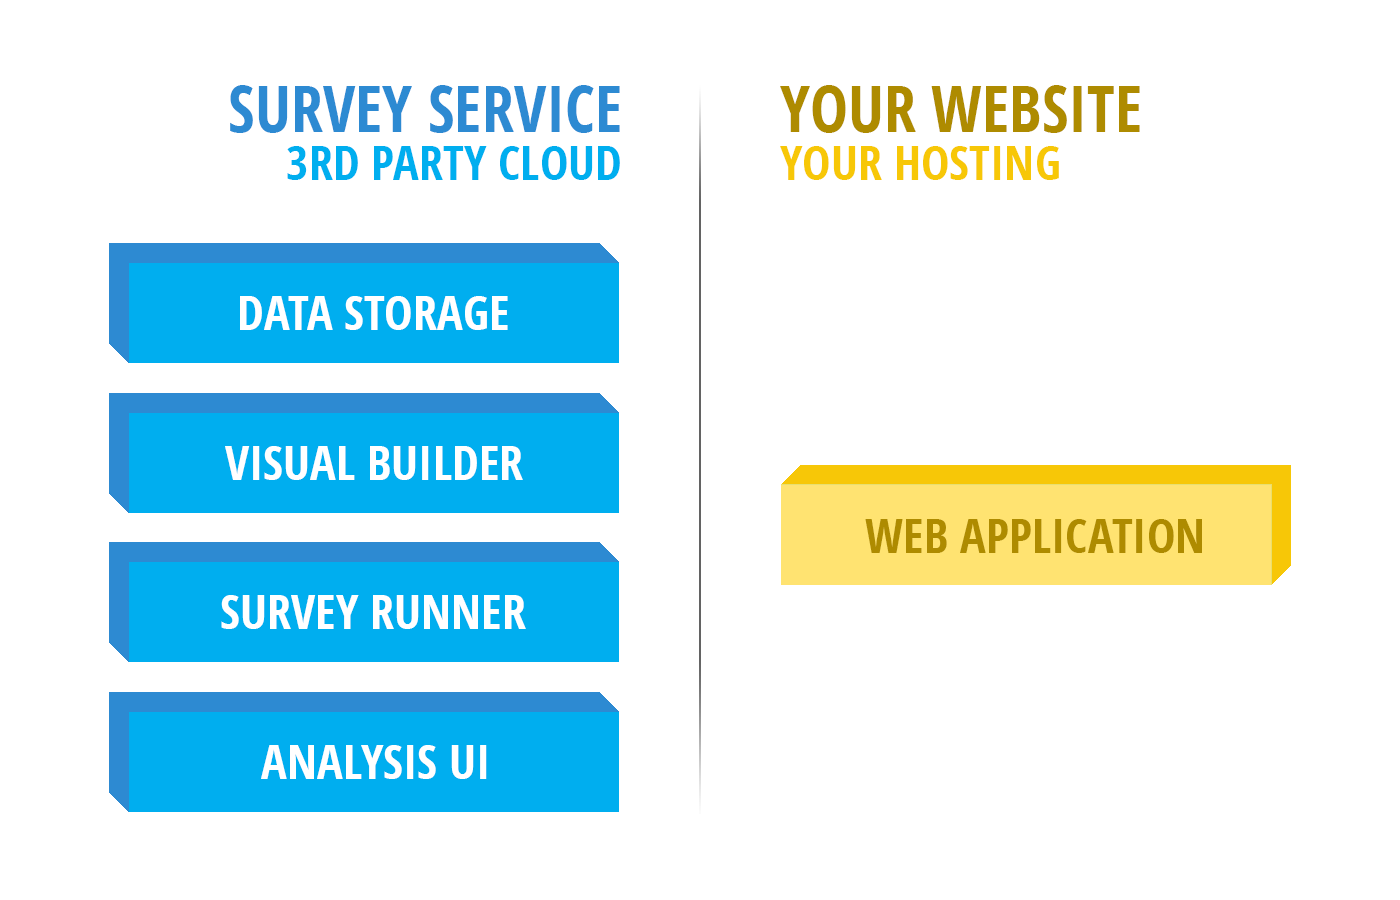 Integrate the Entire Survey Life-cycle into Your Web